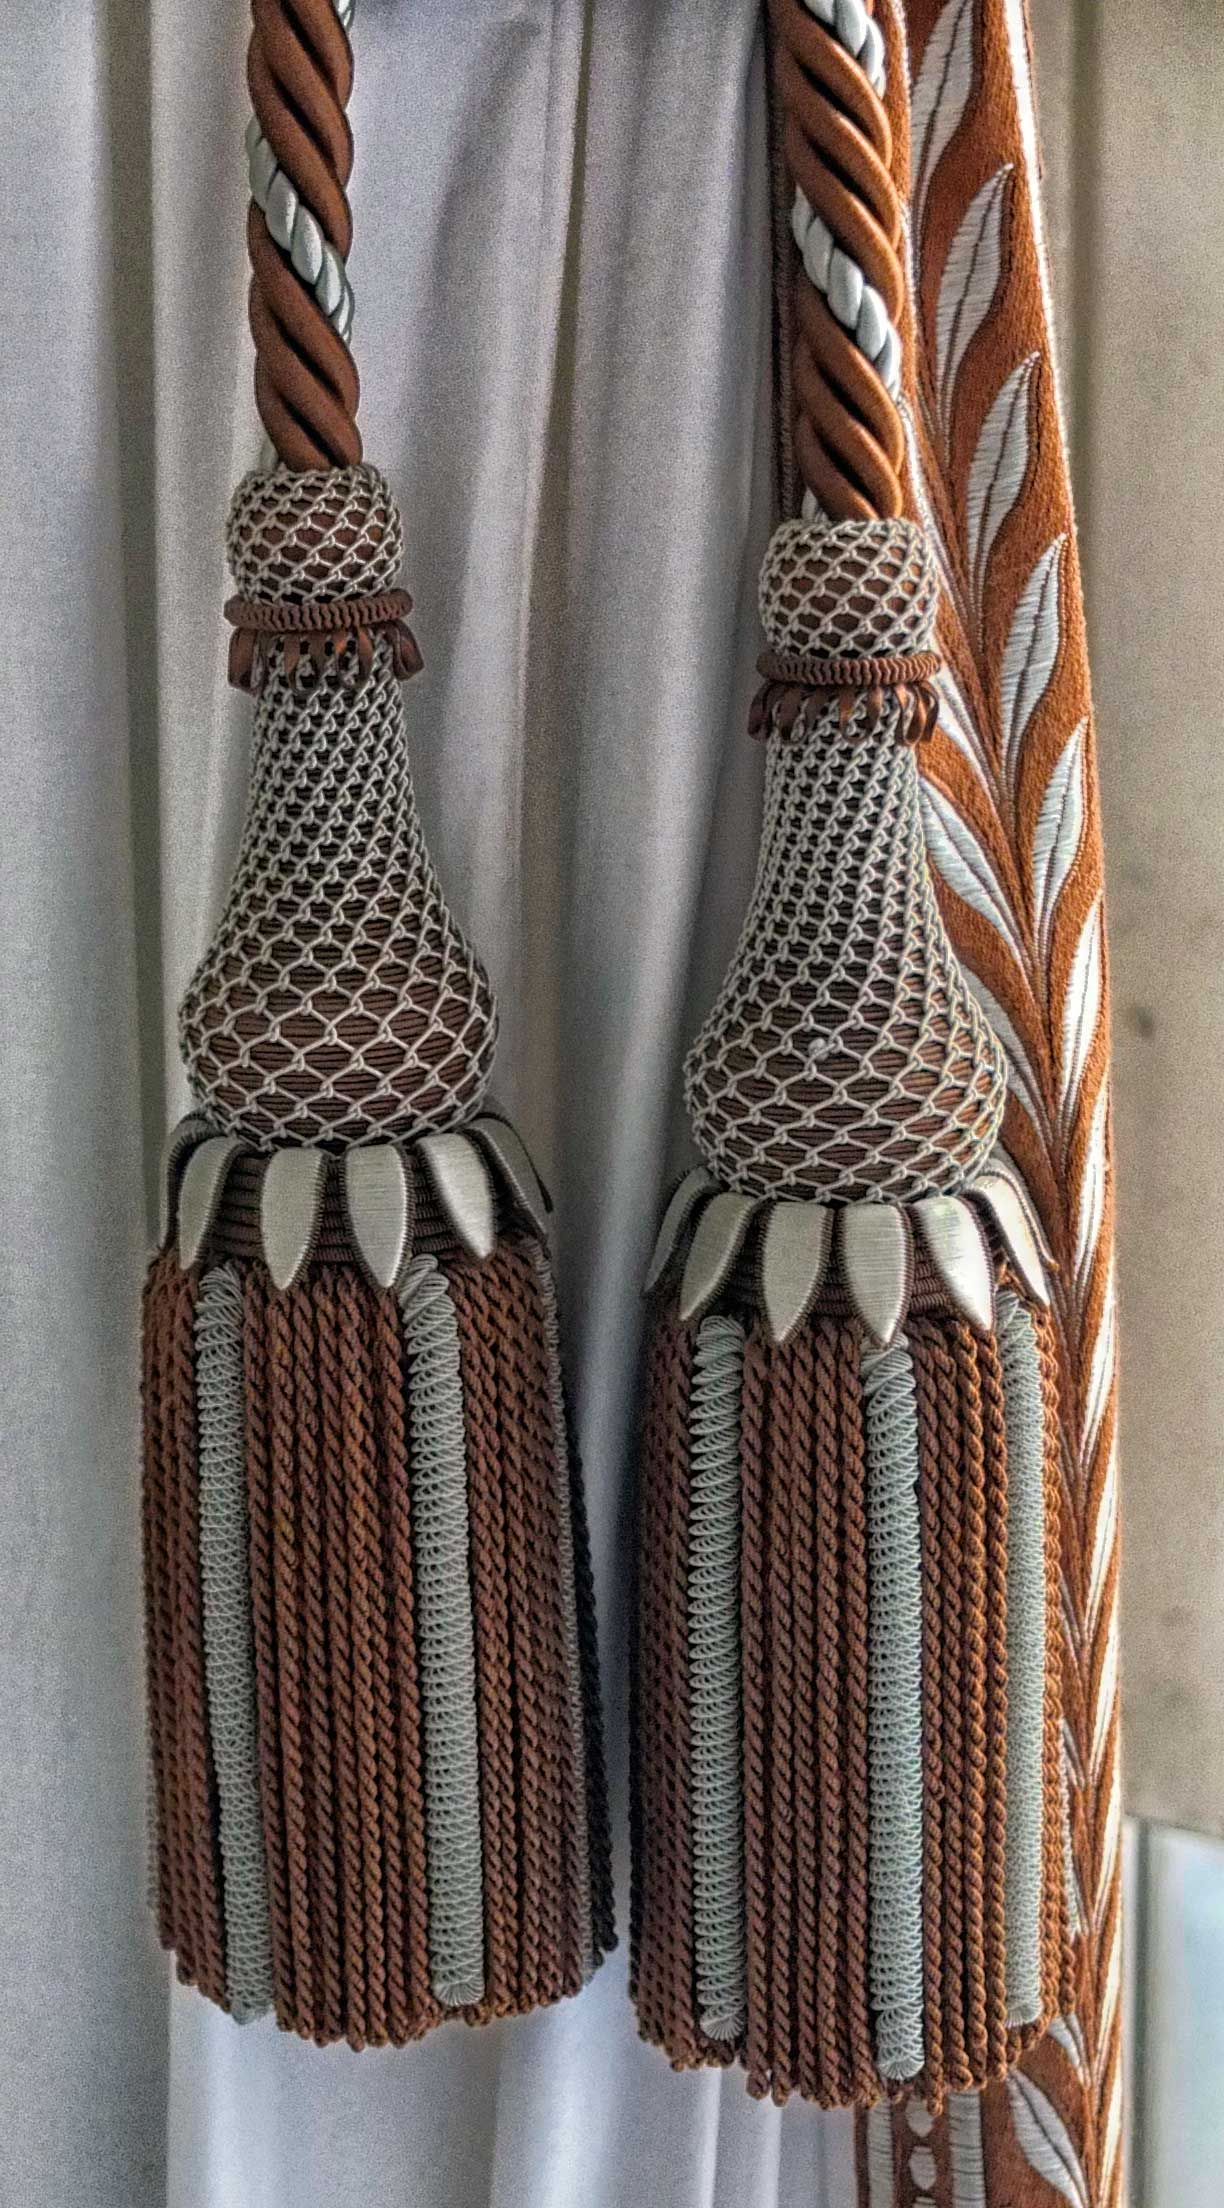 Curtain Tassels X 2 In Chocolate And Cream At Versailles